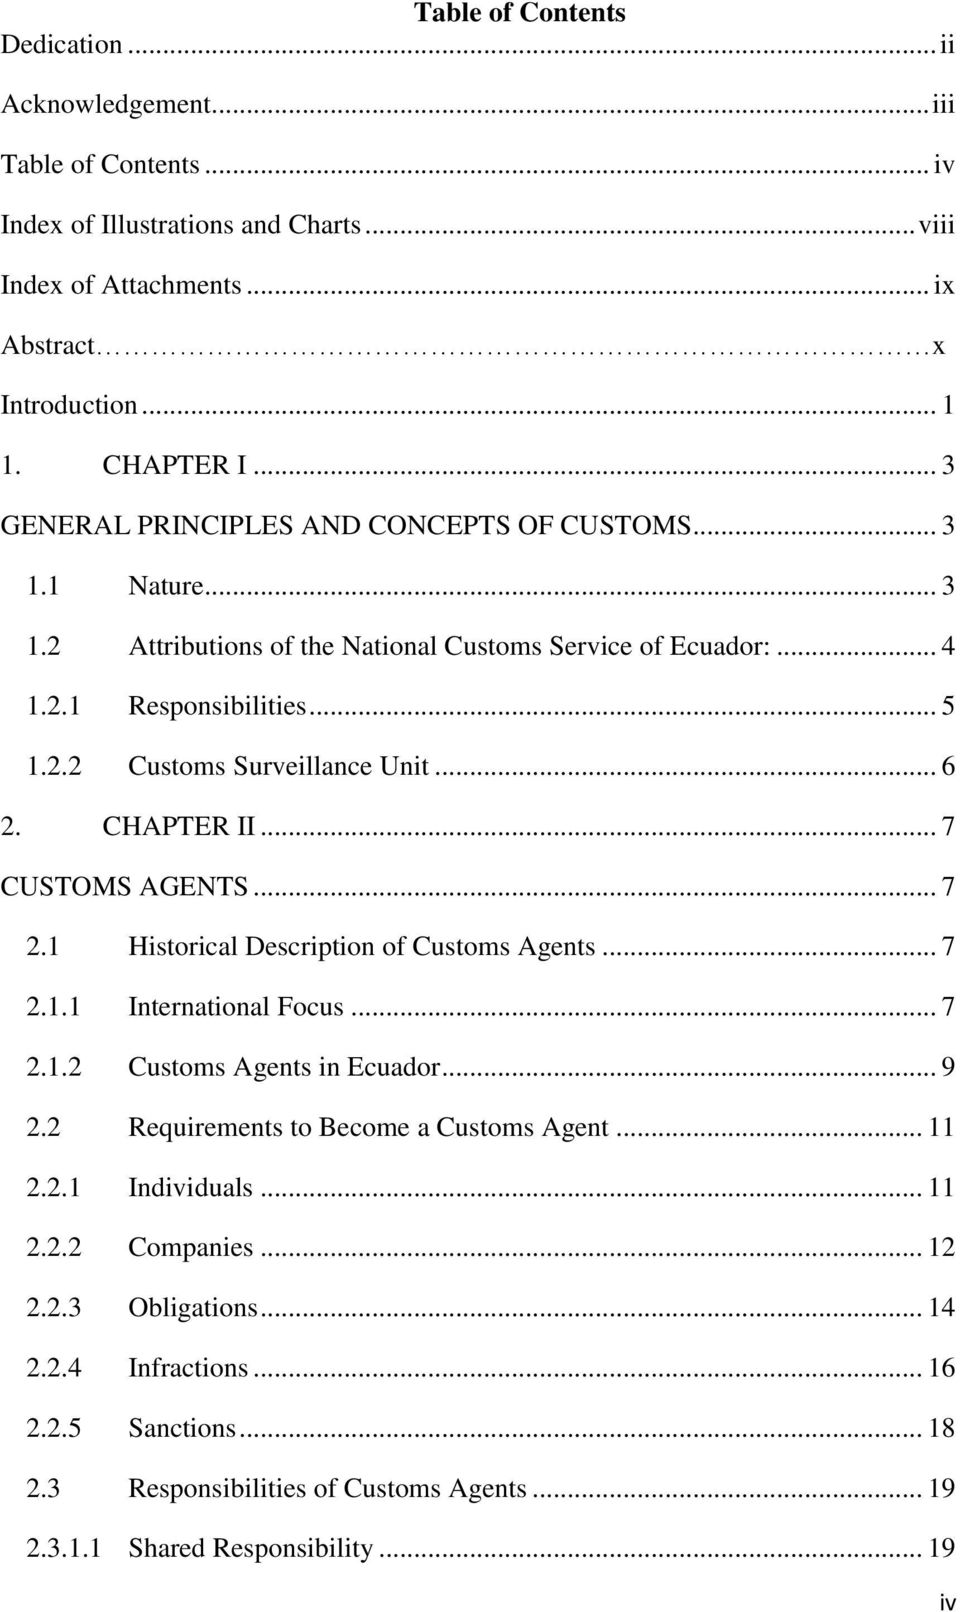 CHAPTER II... 7 CUSTOMS AGENTS... 7 2.1 Historical Description of Customs Agents... 7 2.1.1 International Focus... 7 2.1.2 Customs Agents in Ecuador... 9 2.2 Requirements to Become a Customs Agent.